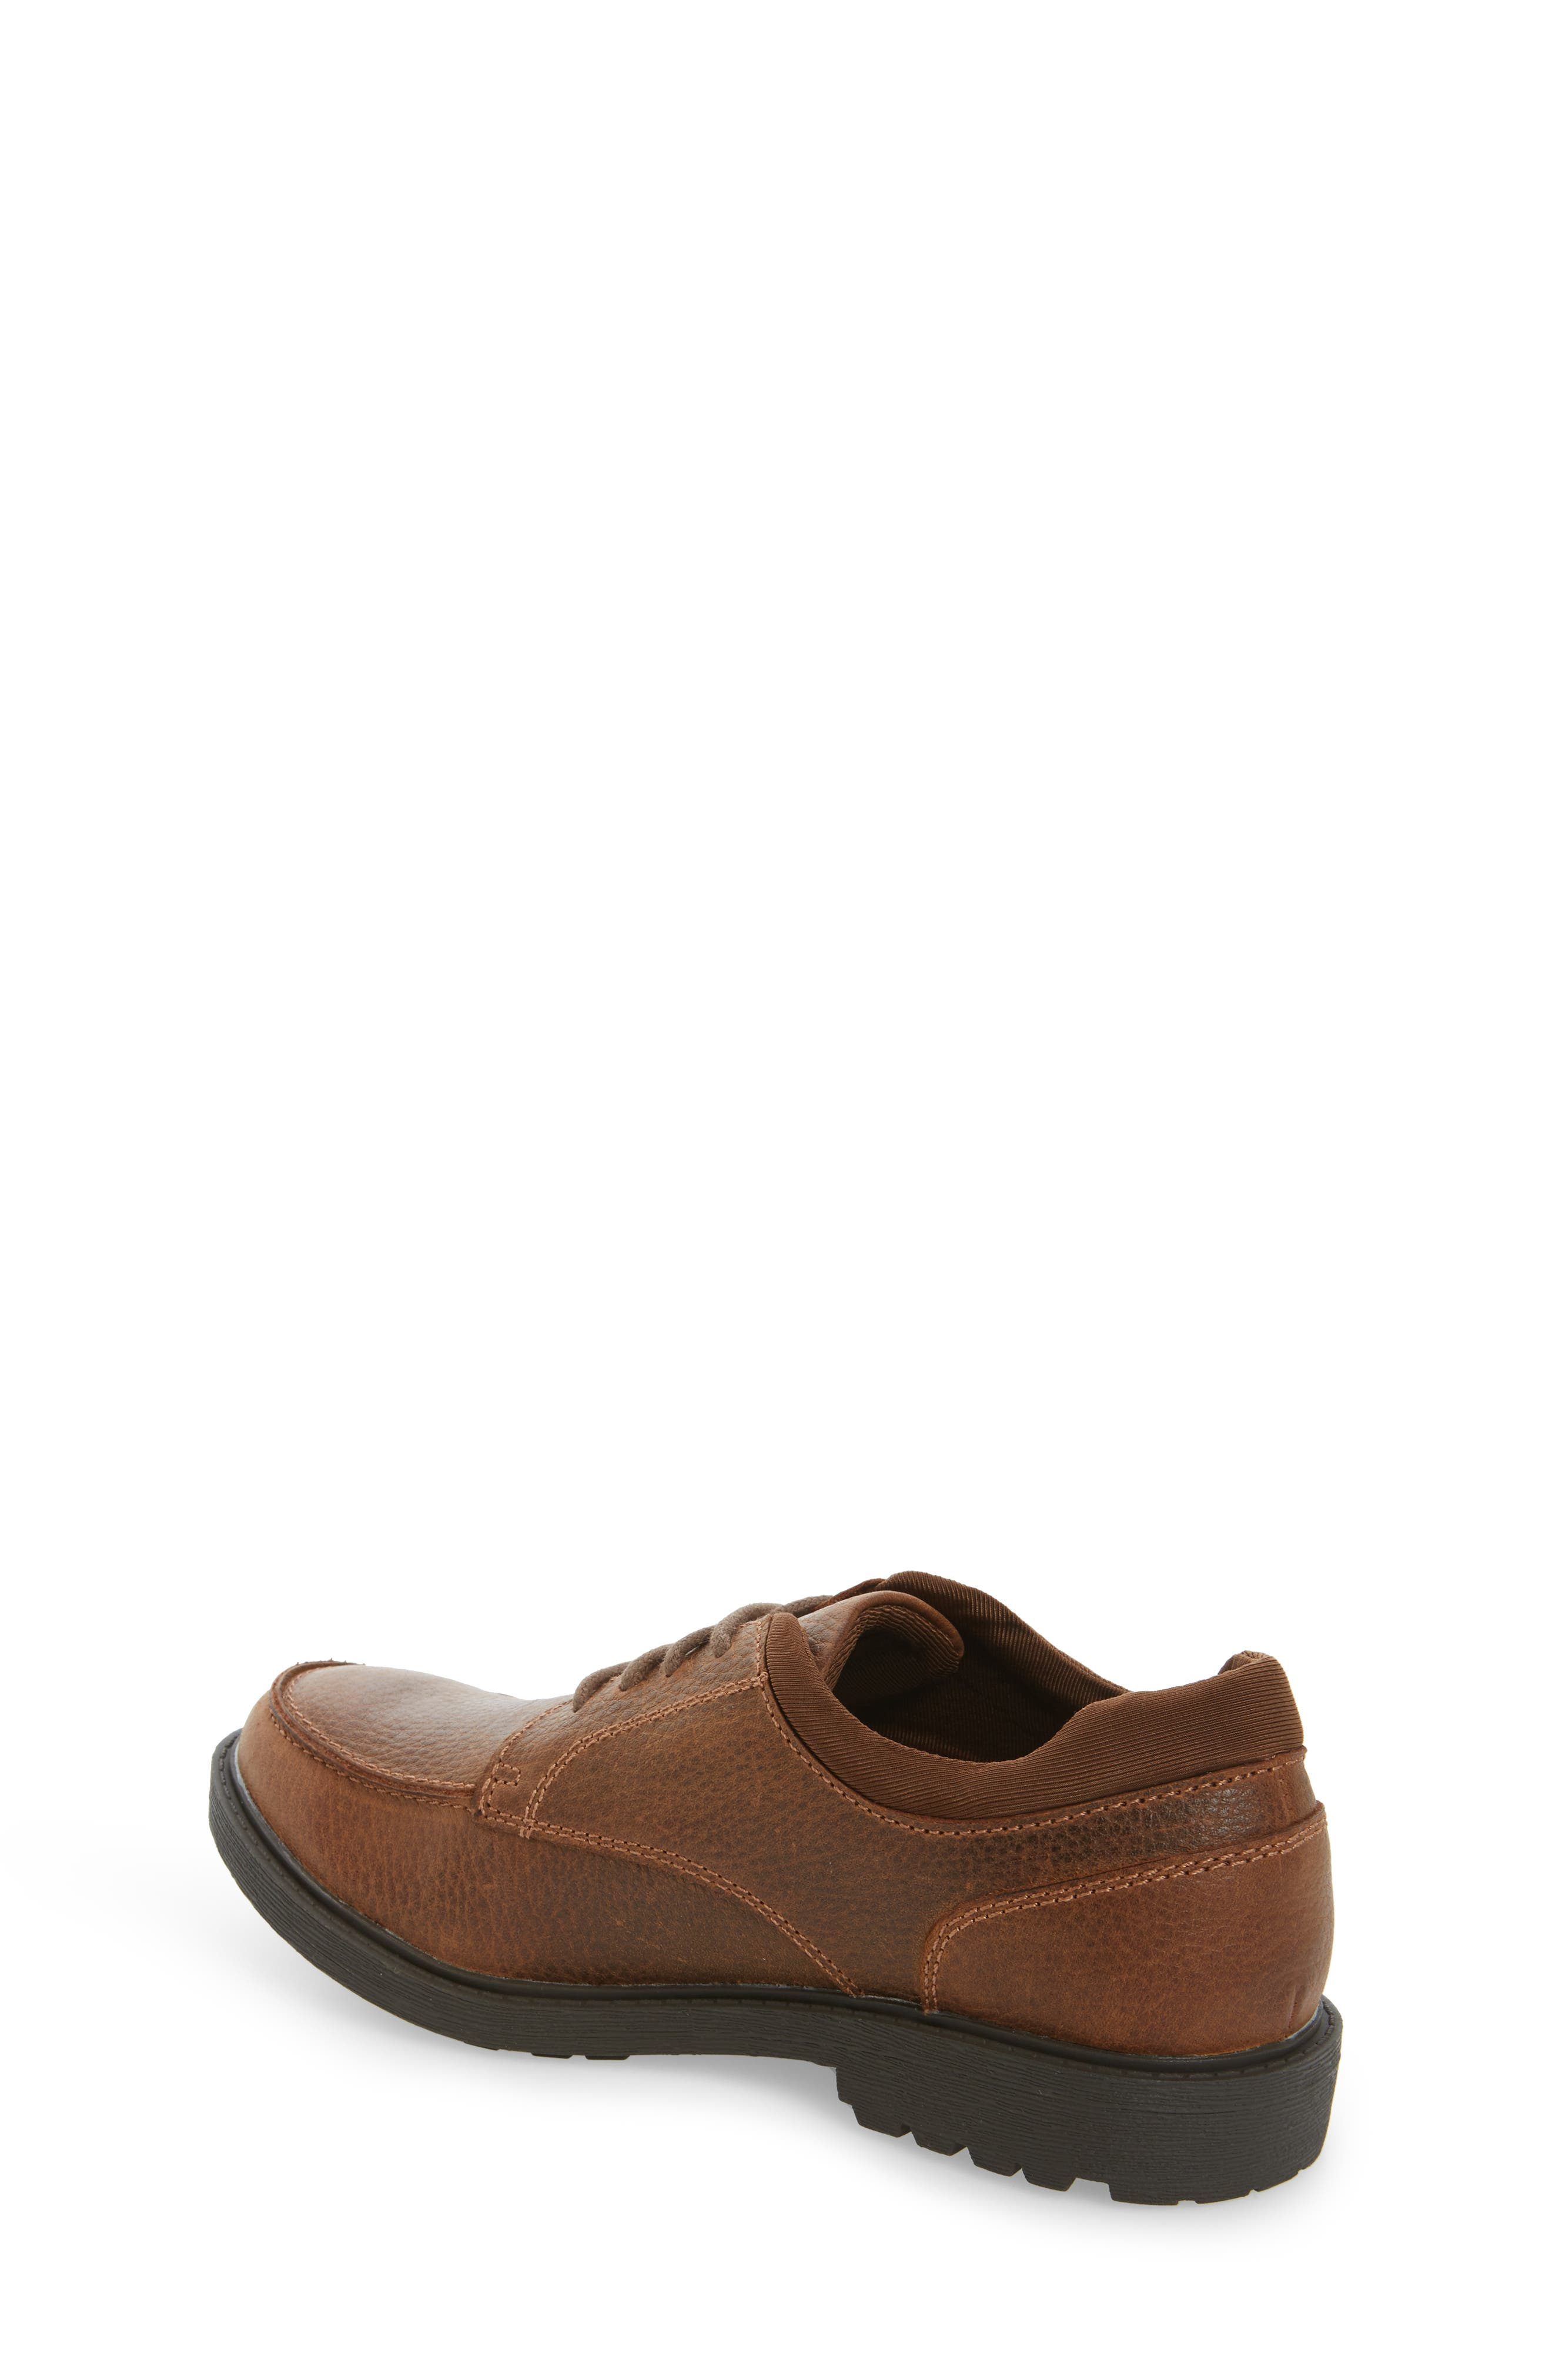 Alternate Image 2  - Kenneth Cole New York Strada Neocap Oxford (Toddler, Little Kid & Big Kid)